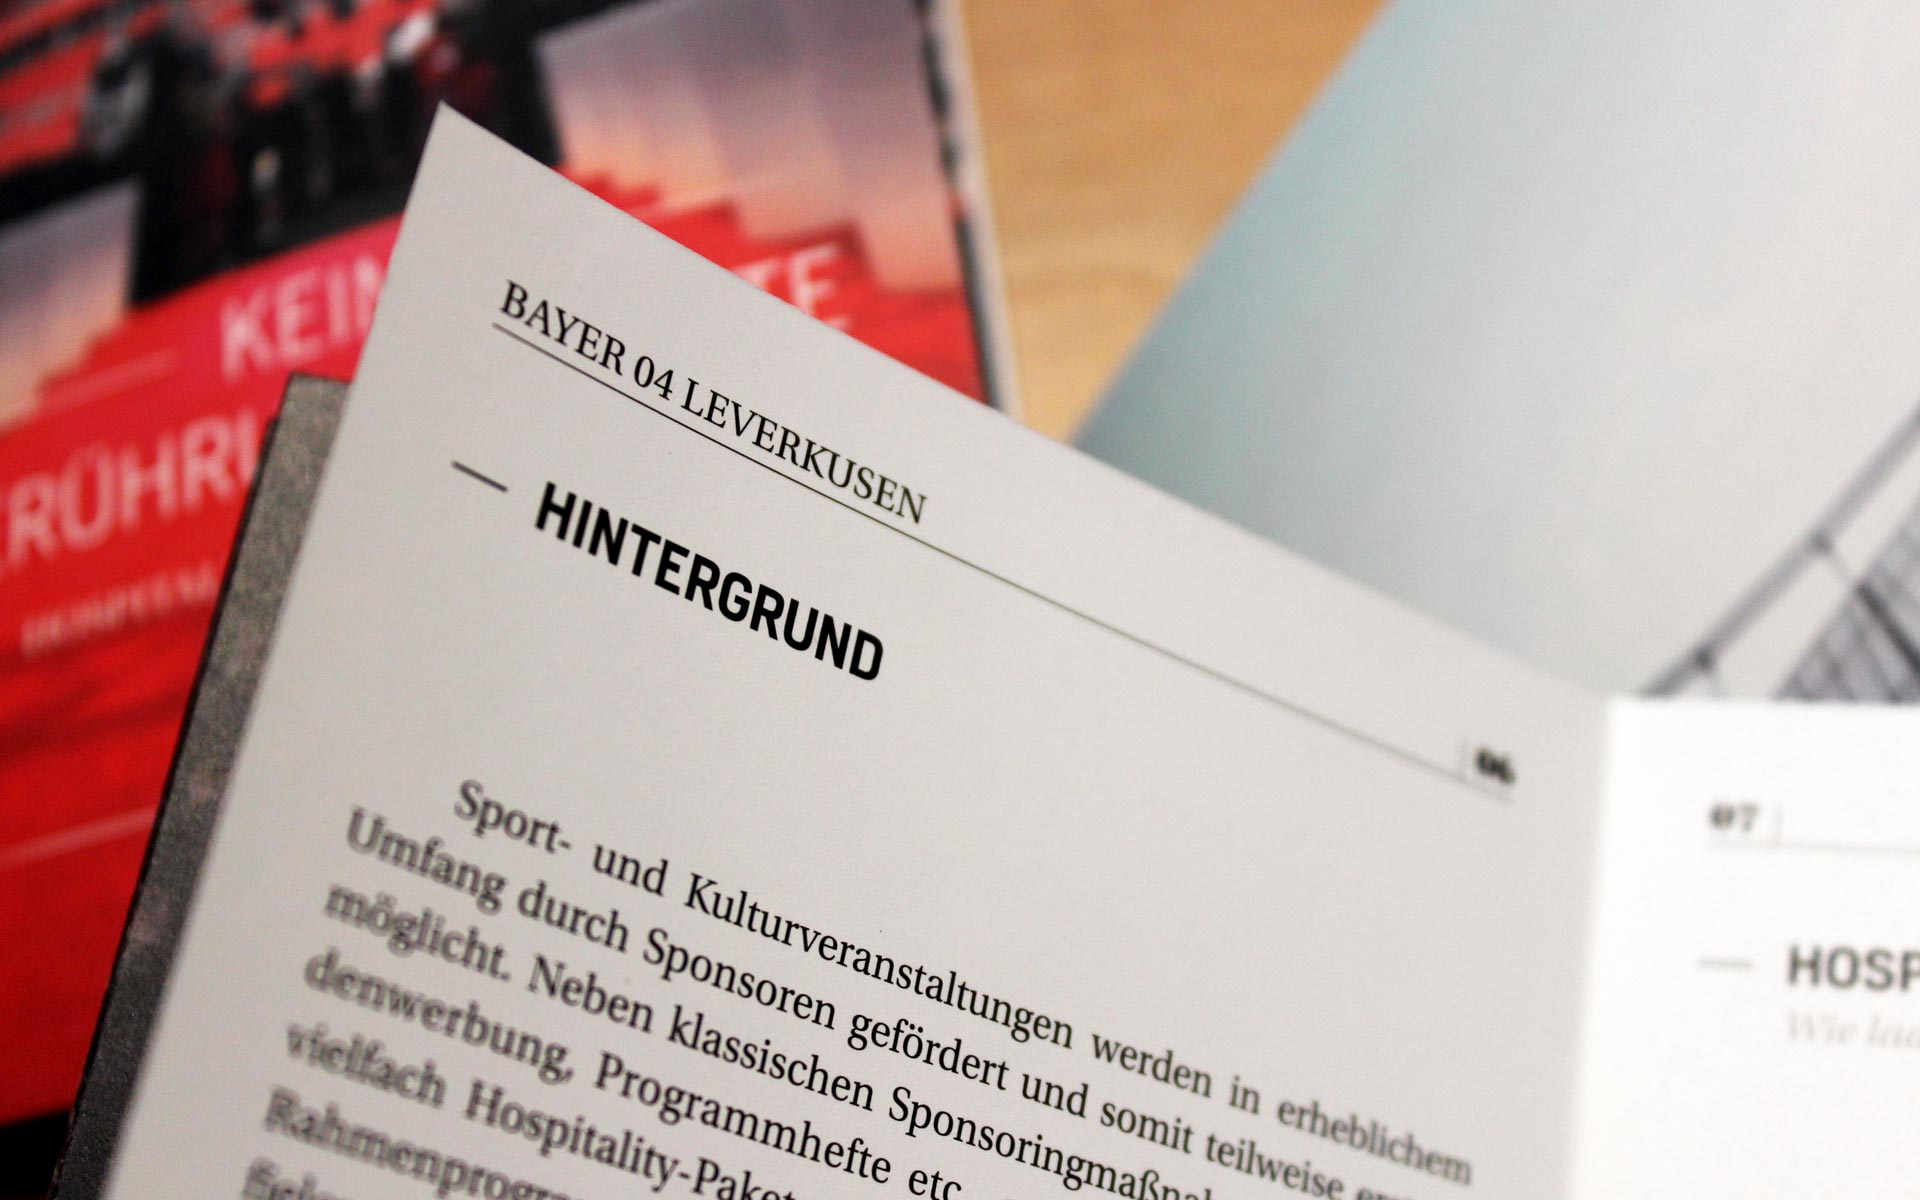 Bayer 04 Markenkommunikation, Corporate Communication, Innenseite Broschüre